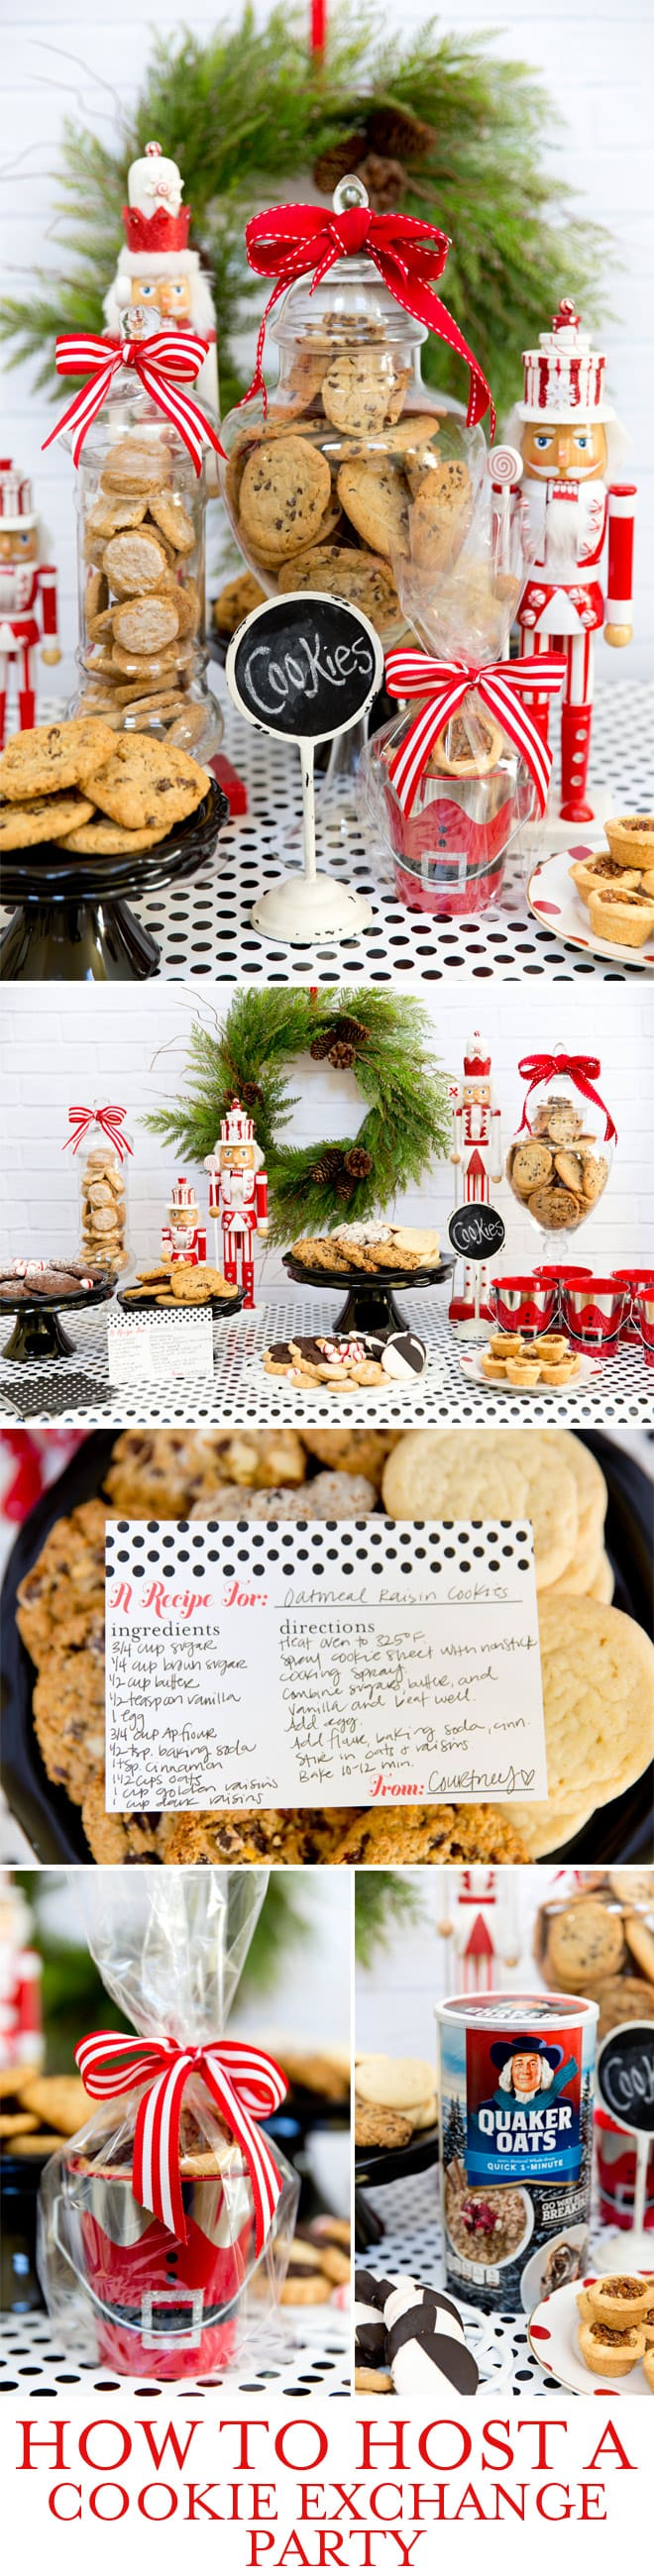 How to Host a Cookie Exchange Party!